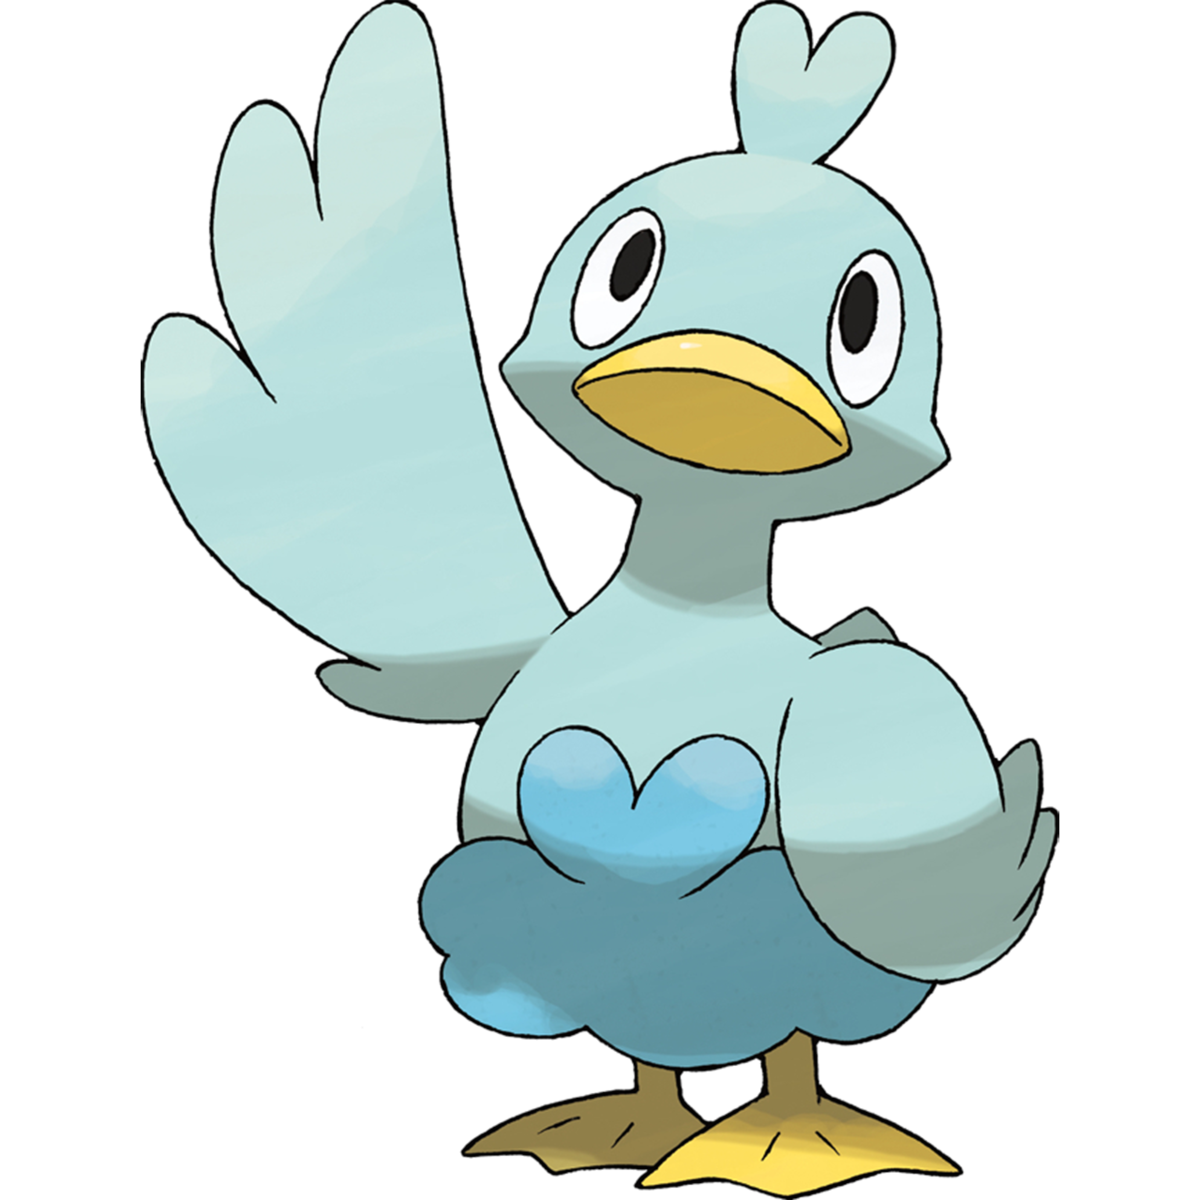 Ducklett Sugimori Artwork